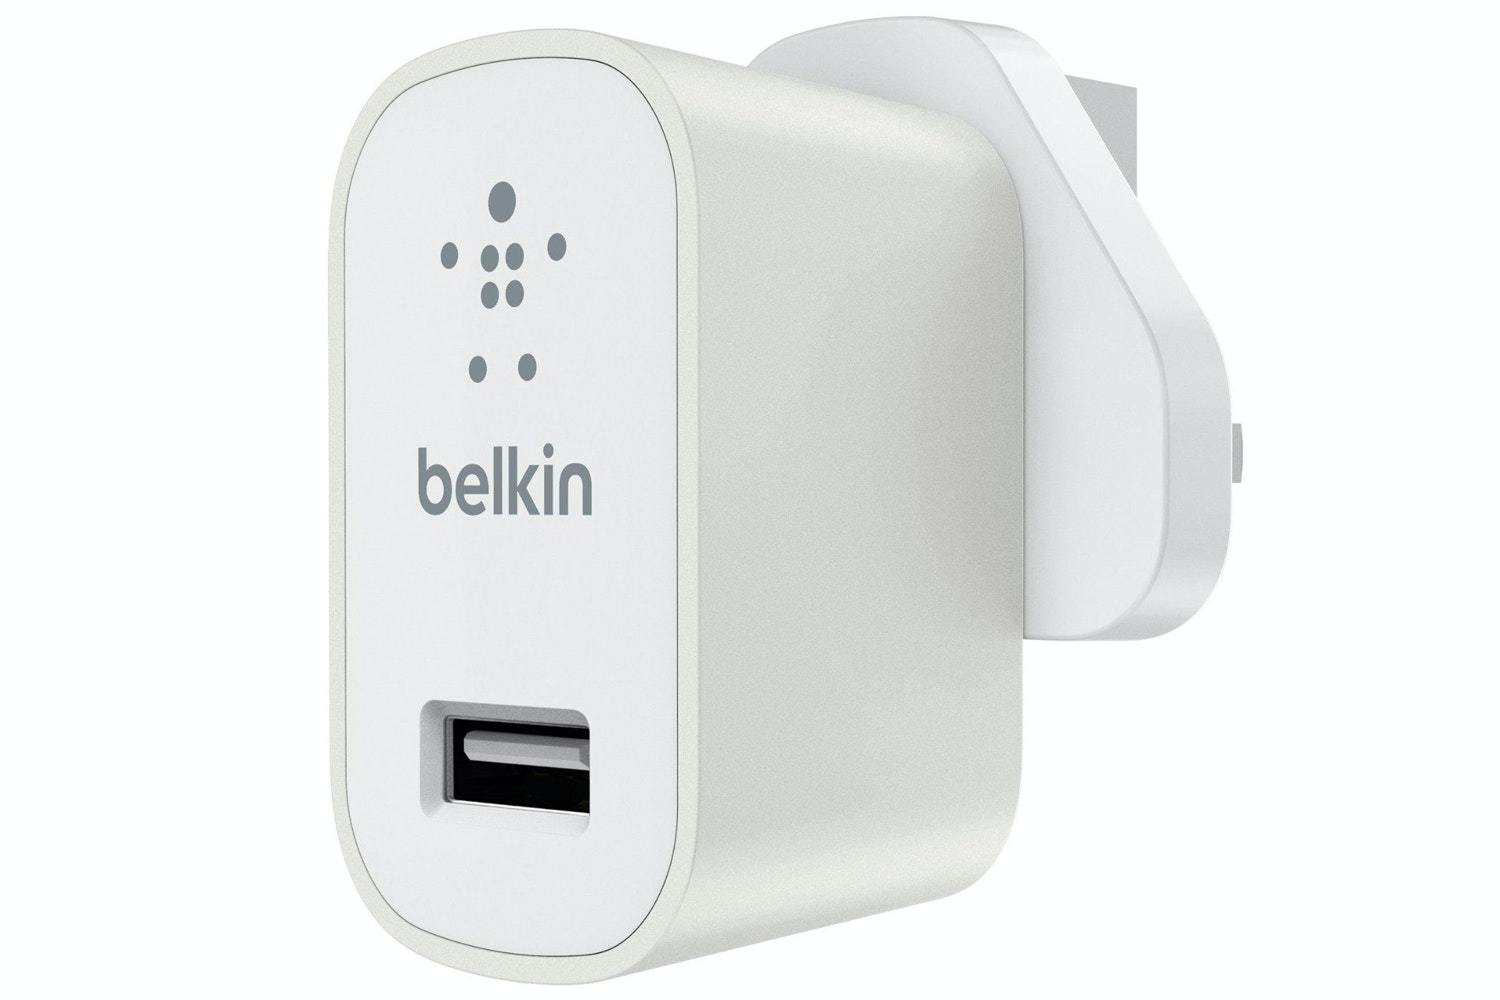 Belkin 2.4AMP Universal Wall Charger